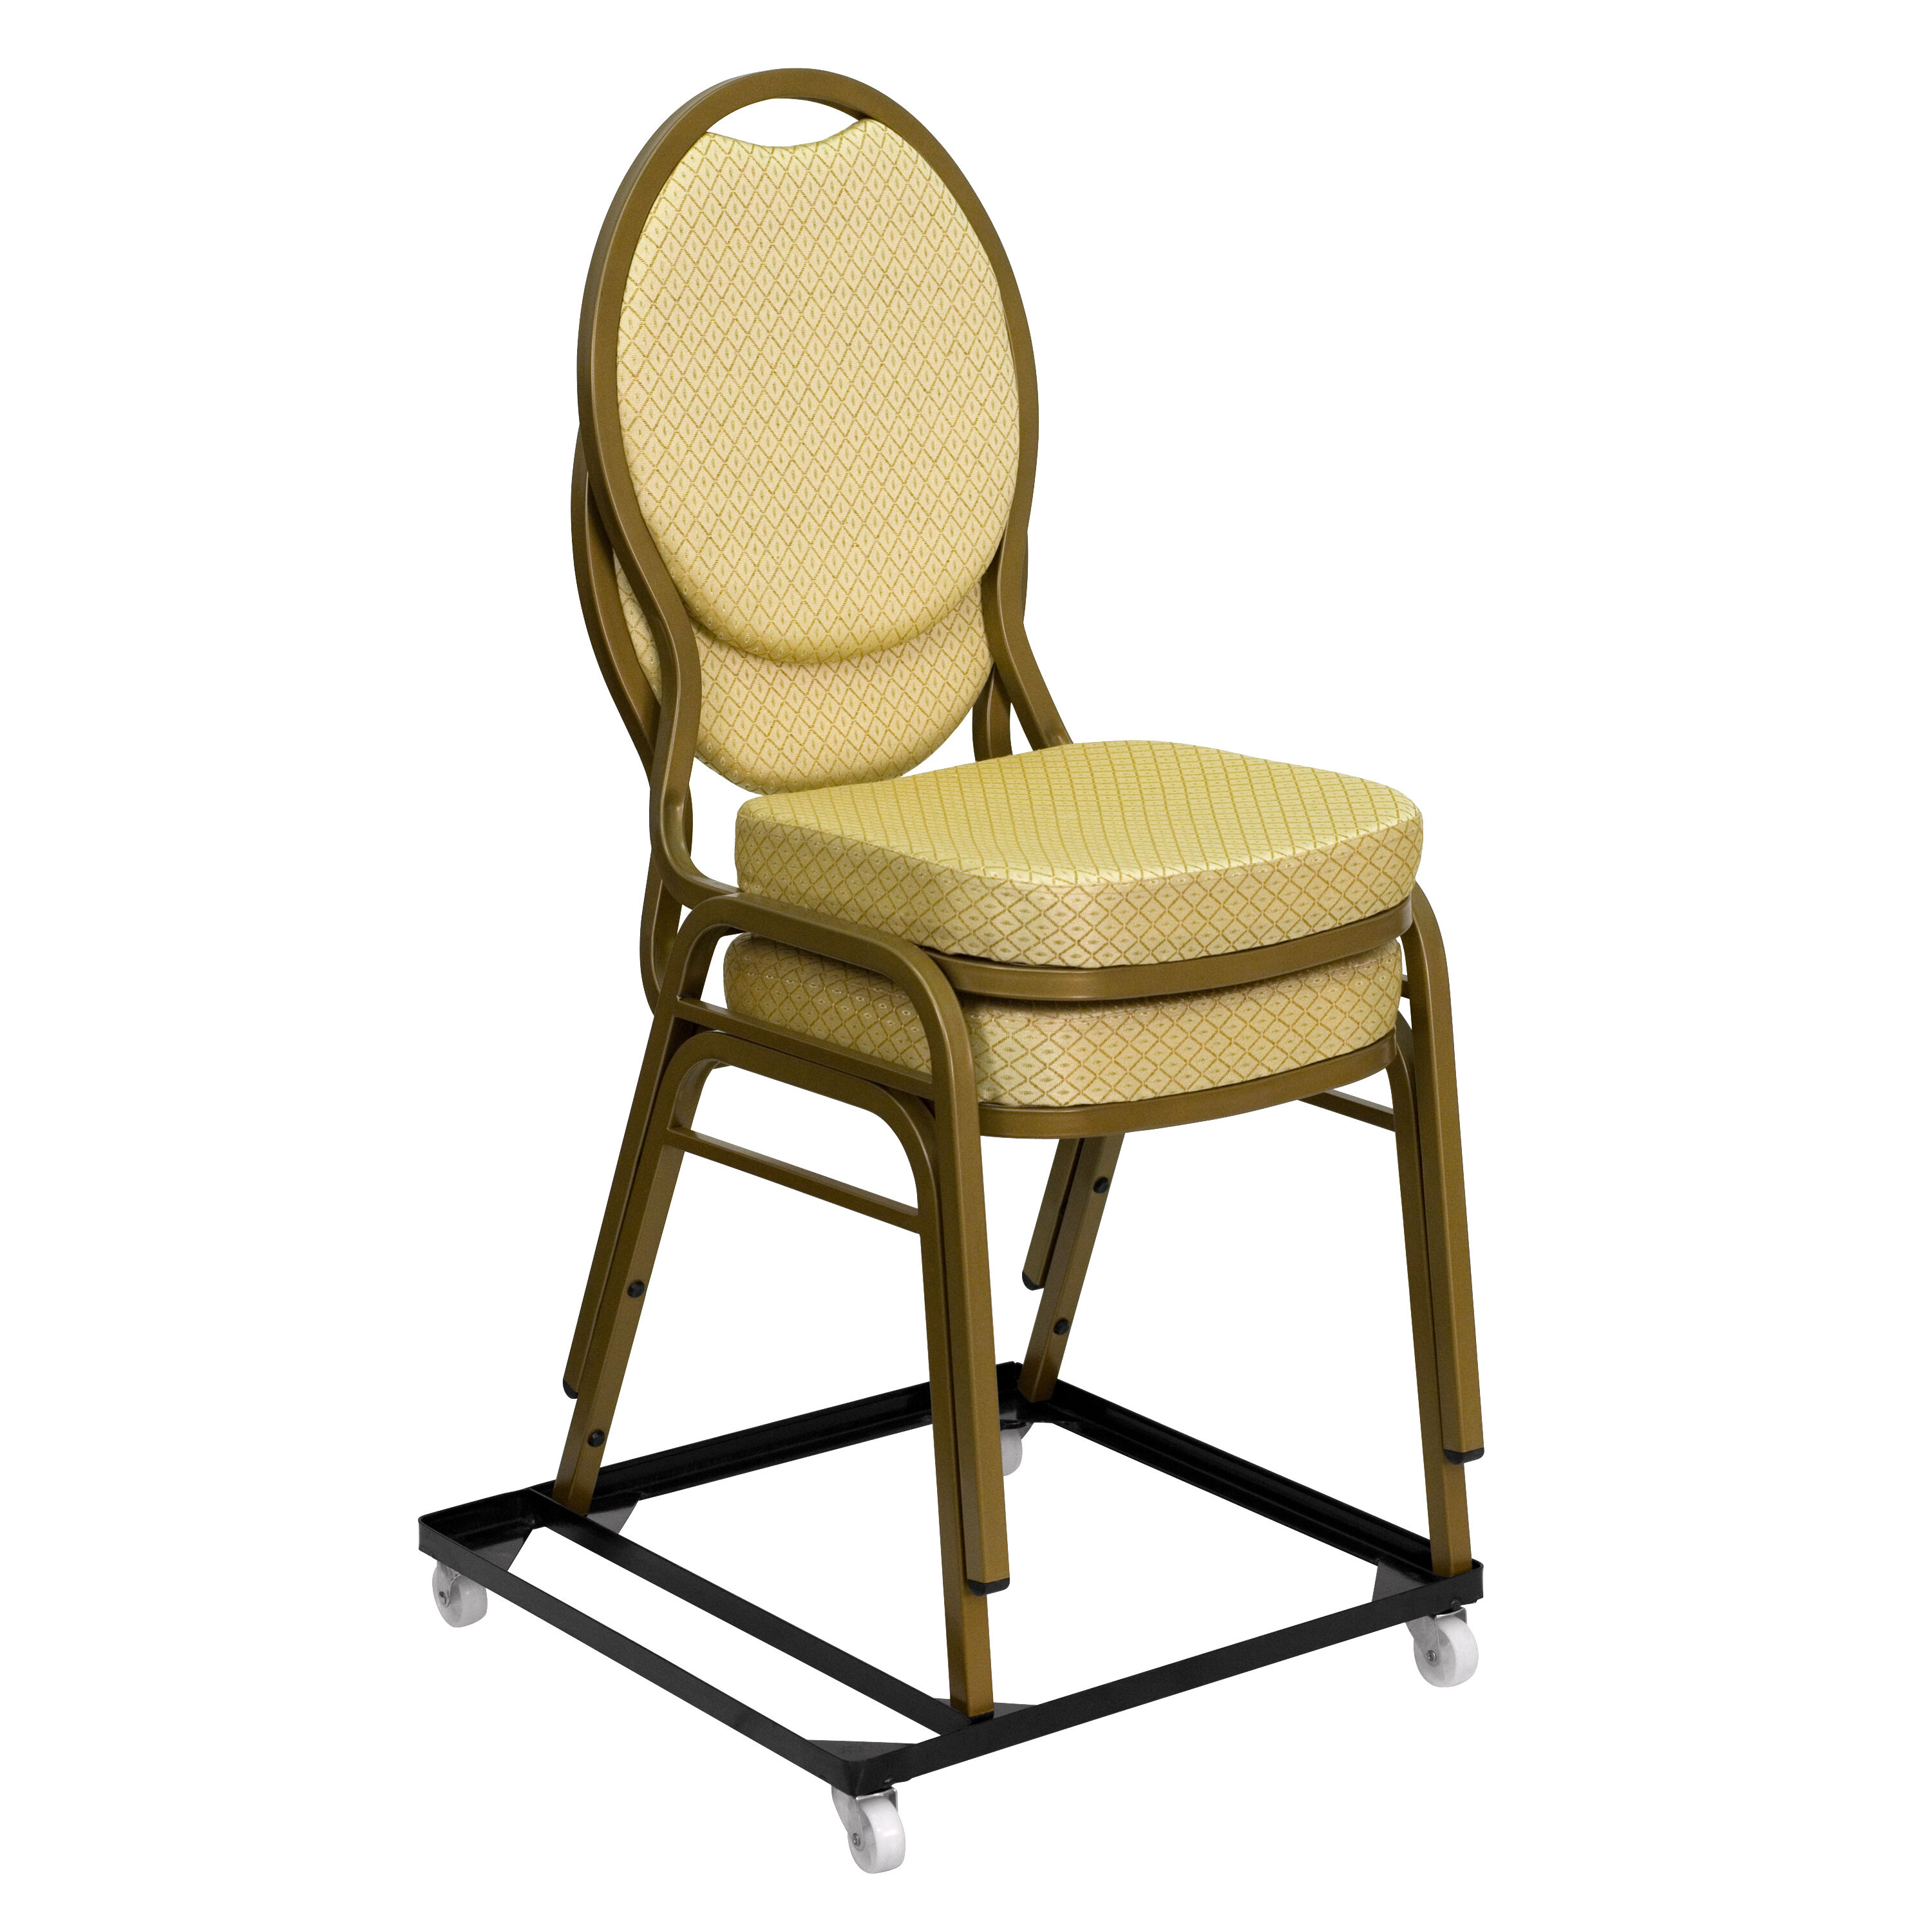 Black Stack Chair Dolly FD BAN CH DOLLY GG | RestaurantFurniture4Less.com